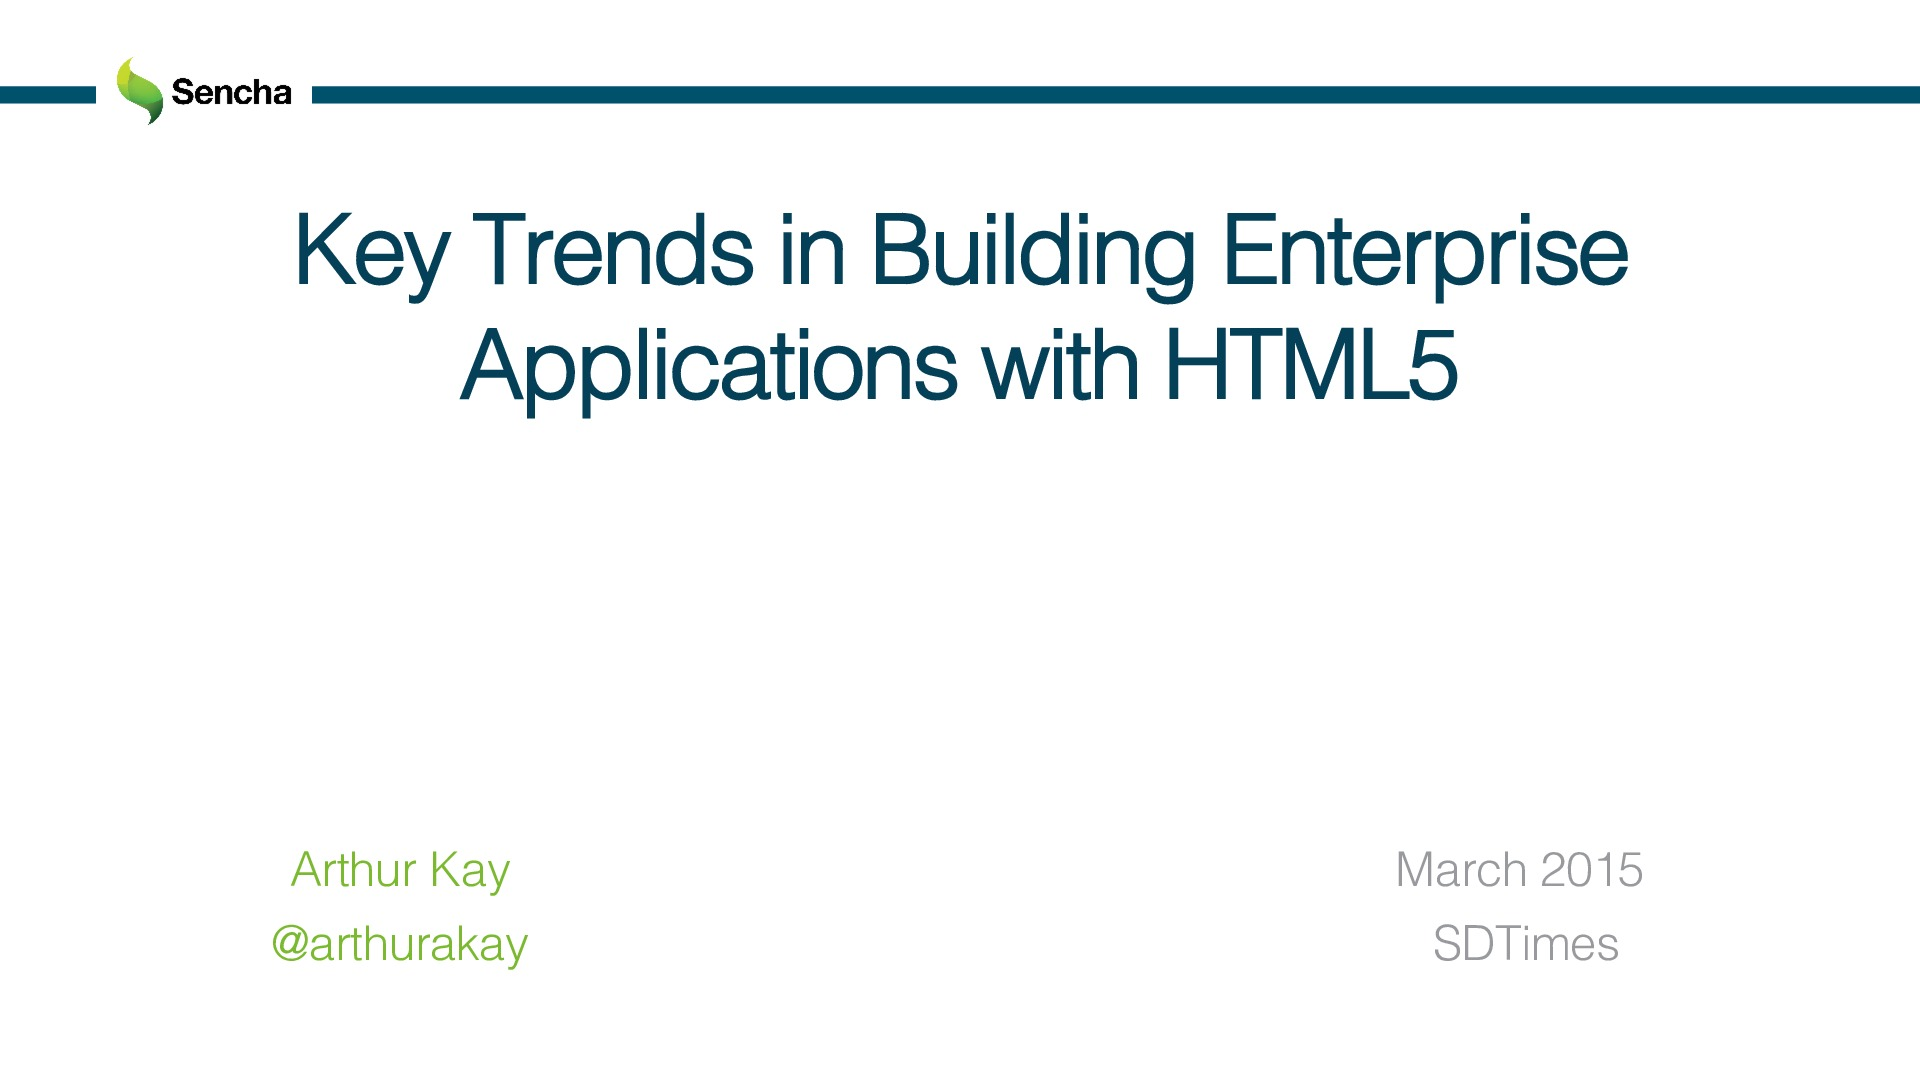 Key Trends in Building Enterprise Applications with HTML5